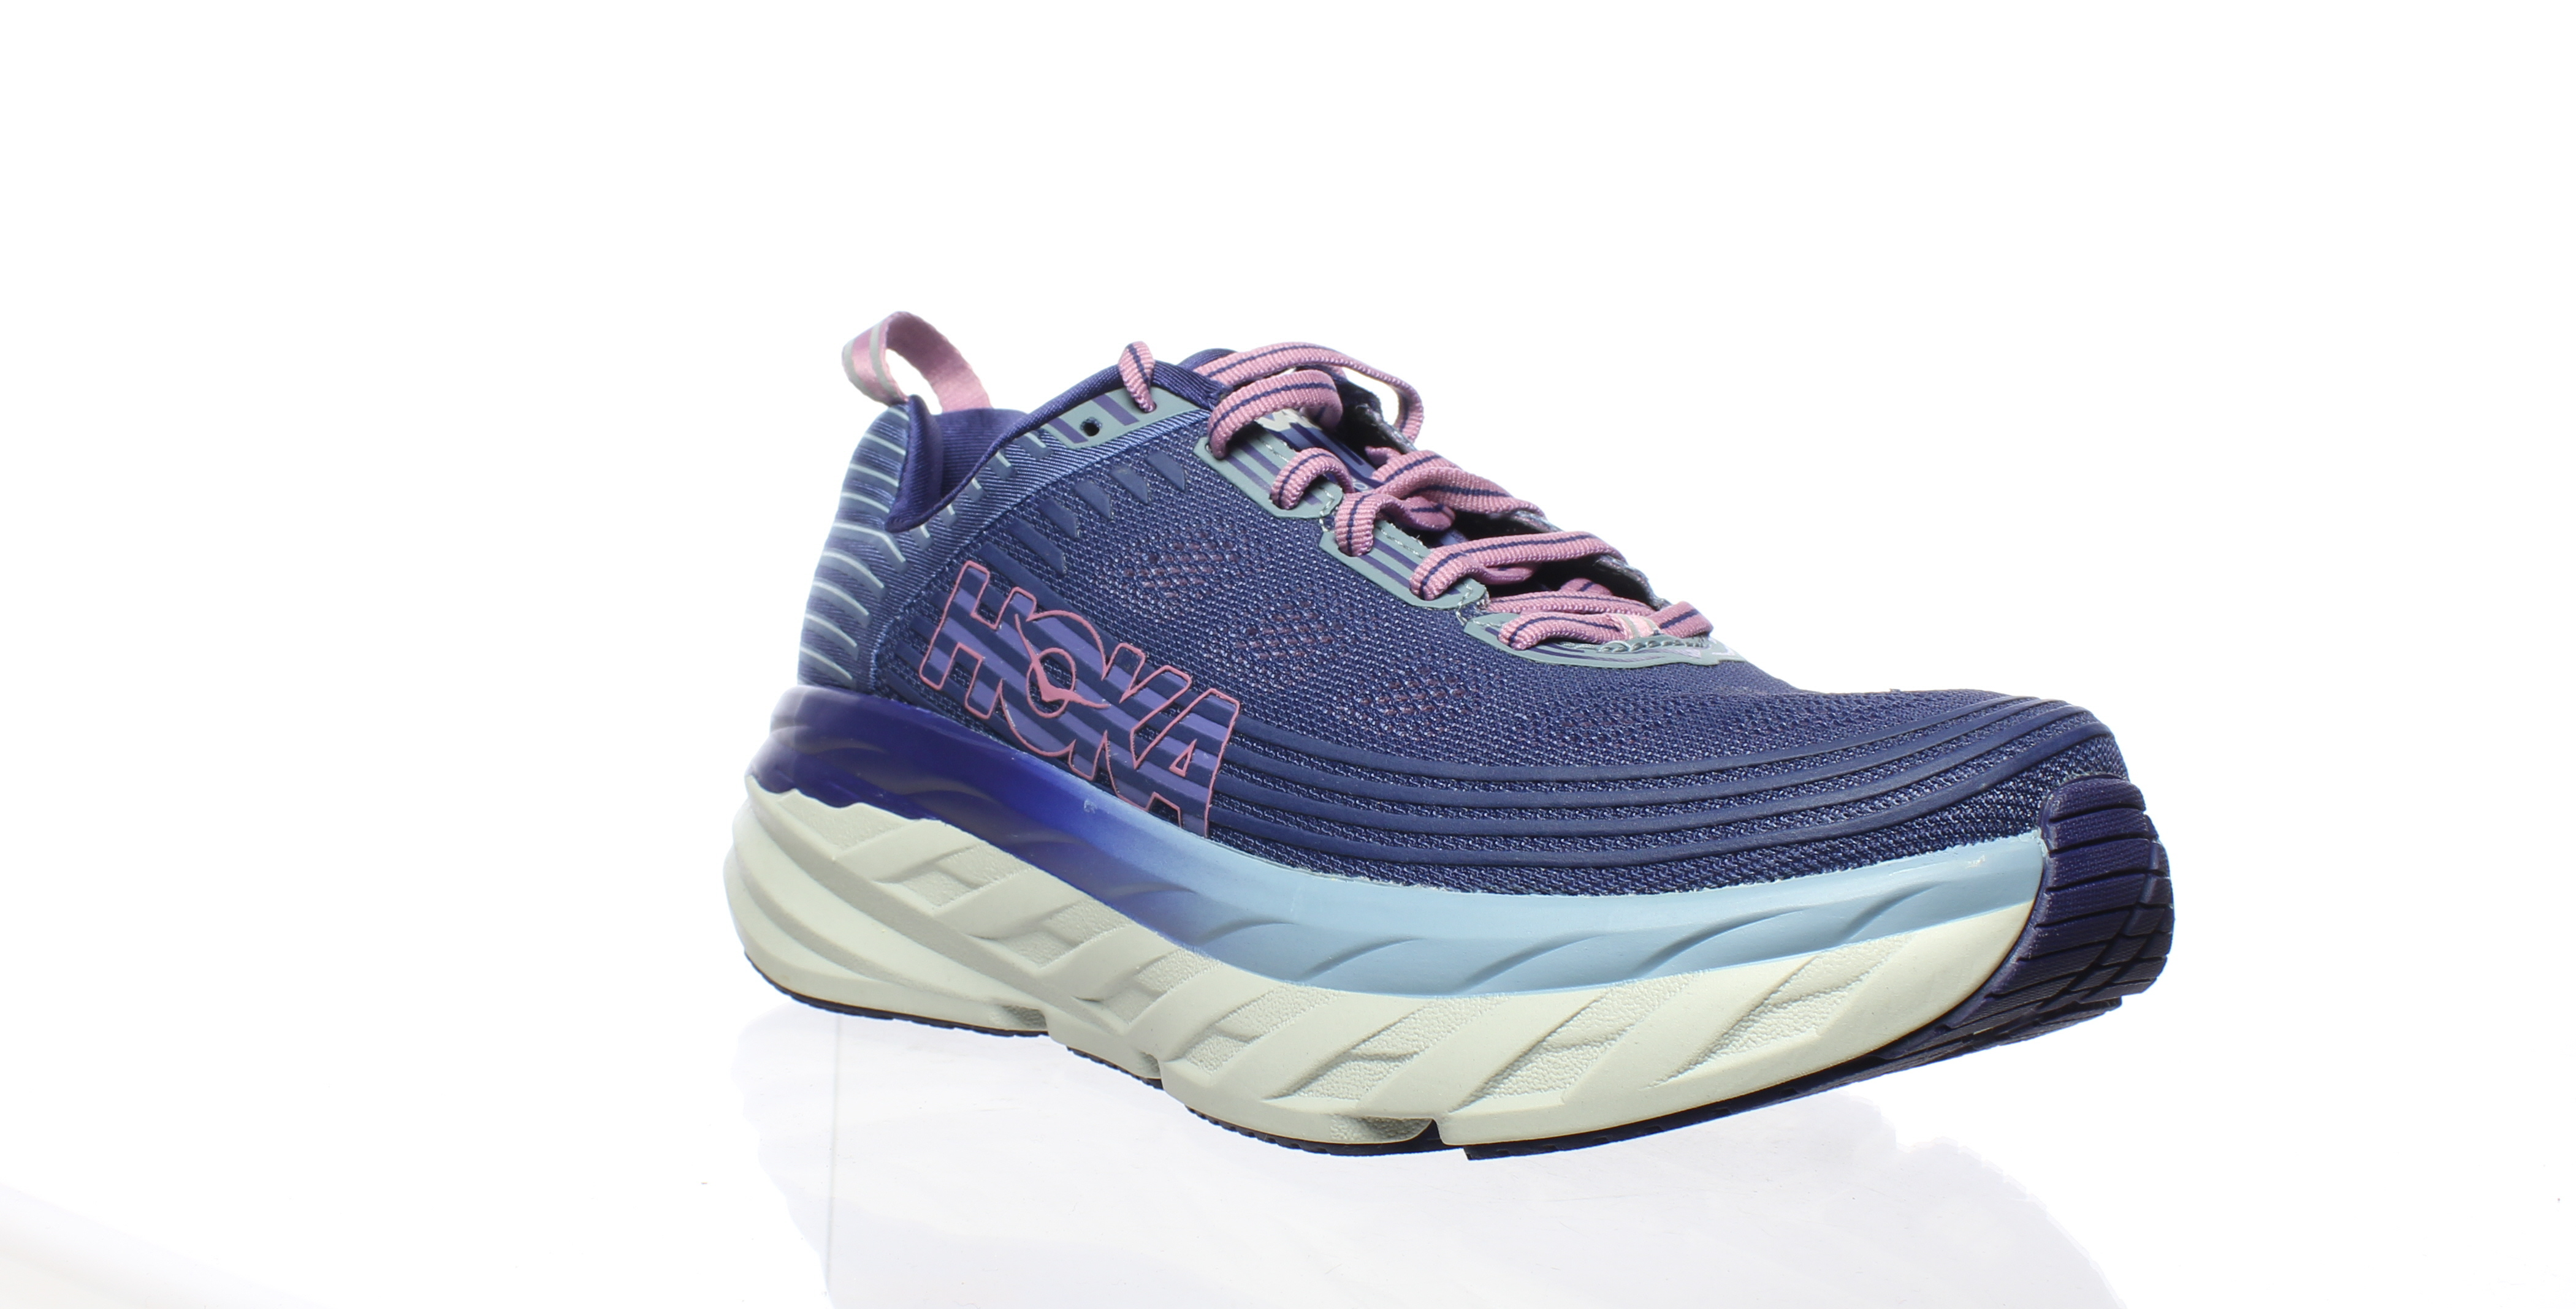 045bc50298ac42 Details about Hoka One One Womens Bondi 6 Purple Running Shoes Size 7  (182842)